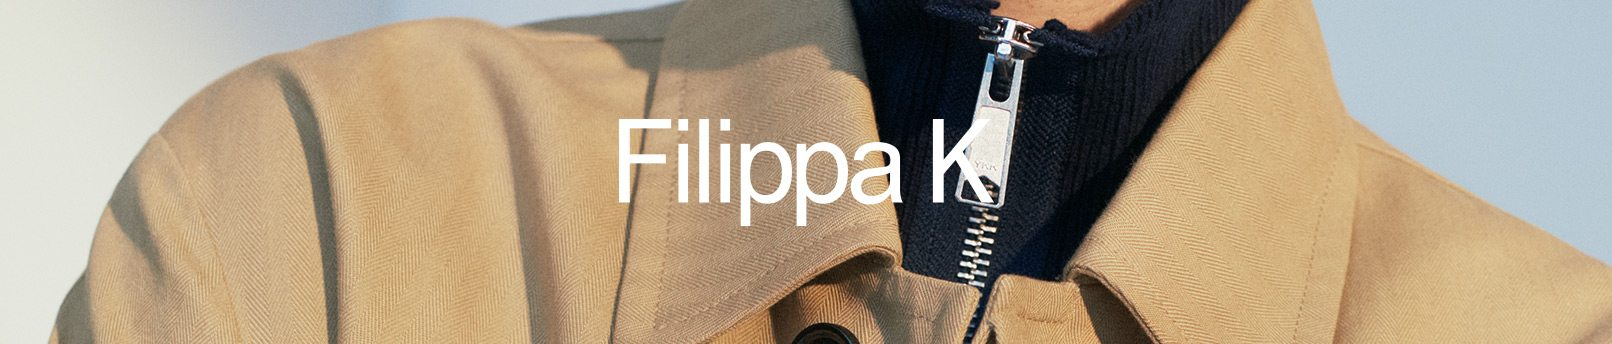 Filippa K shoppen